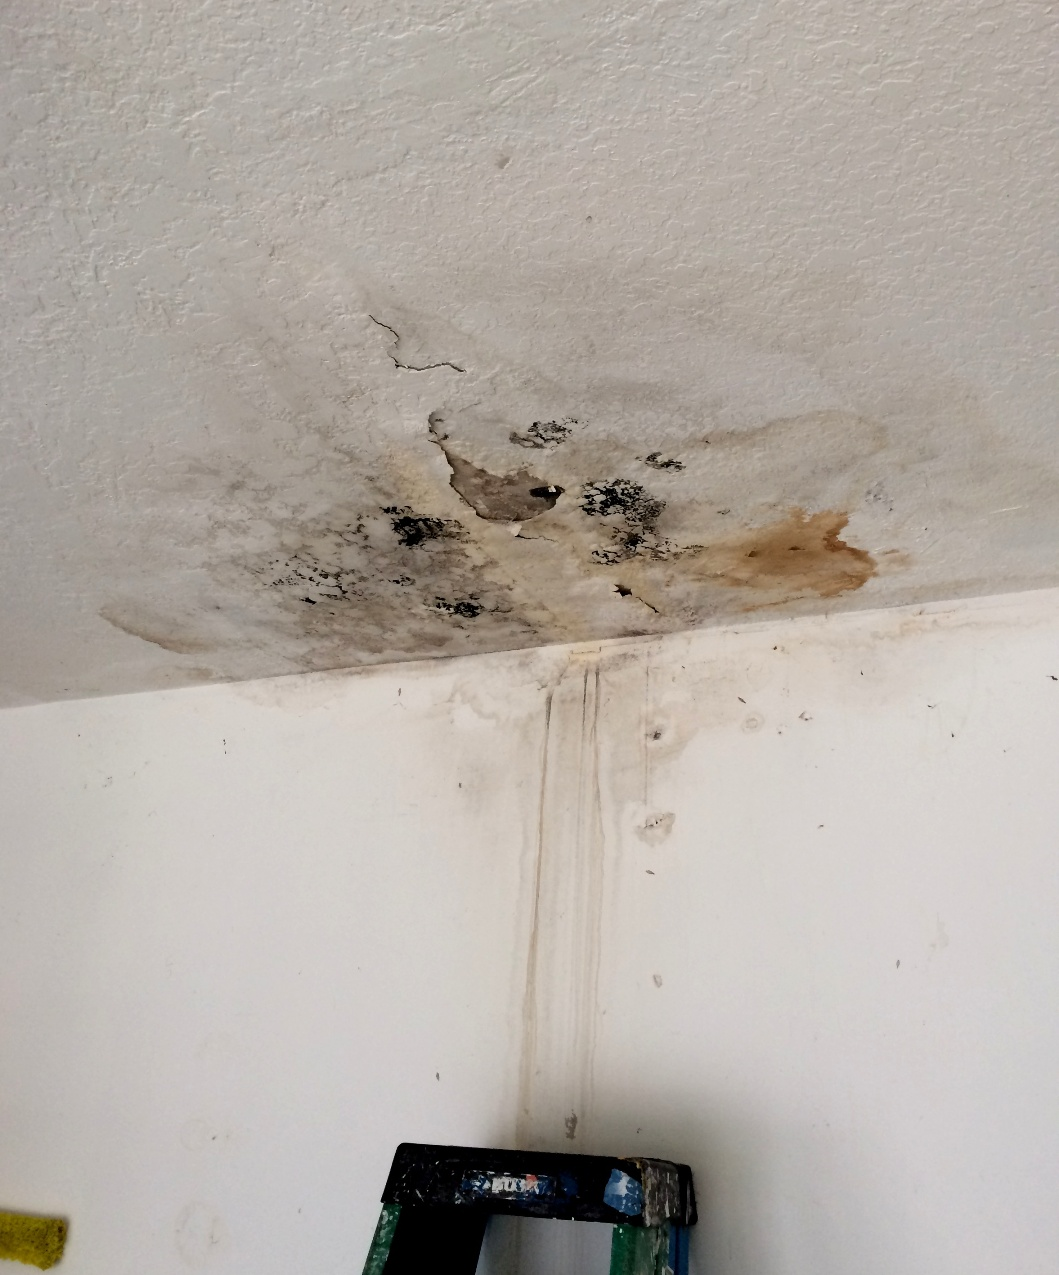 Mold on ceiling from leak